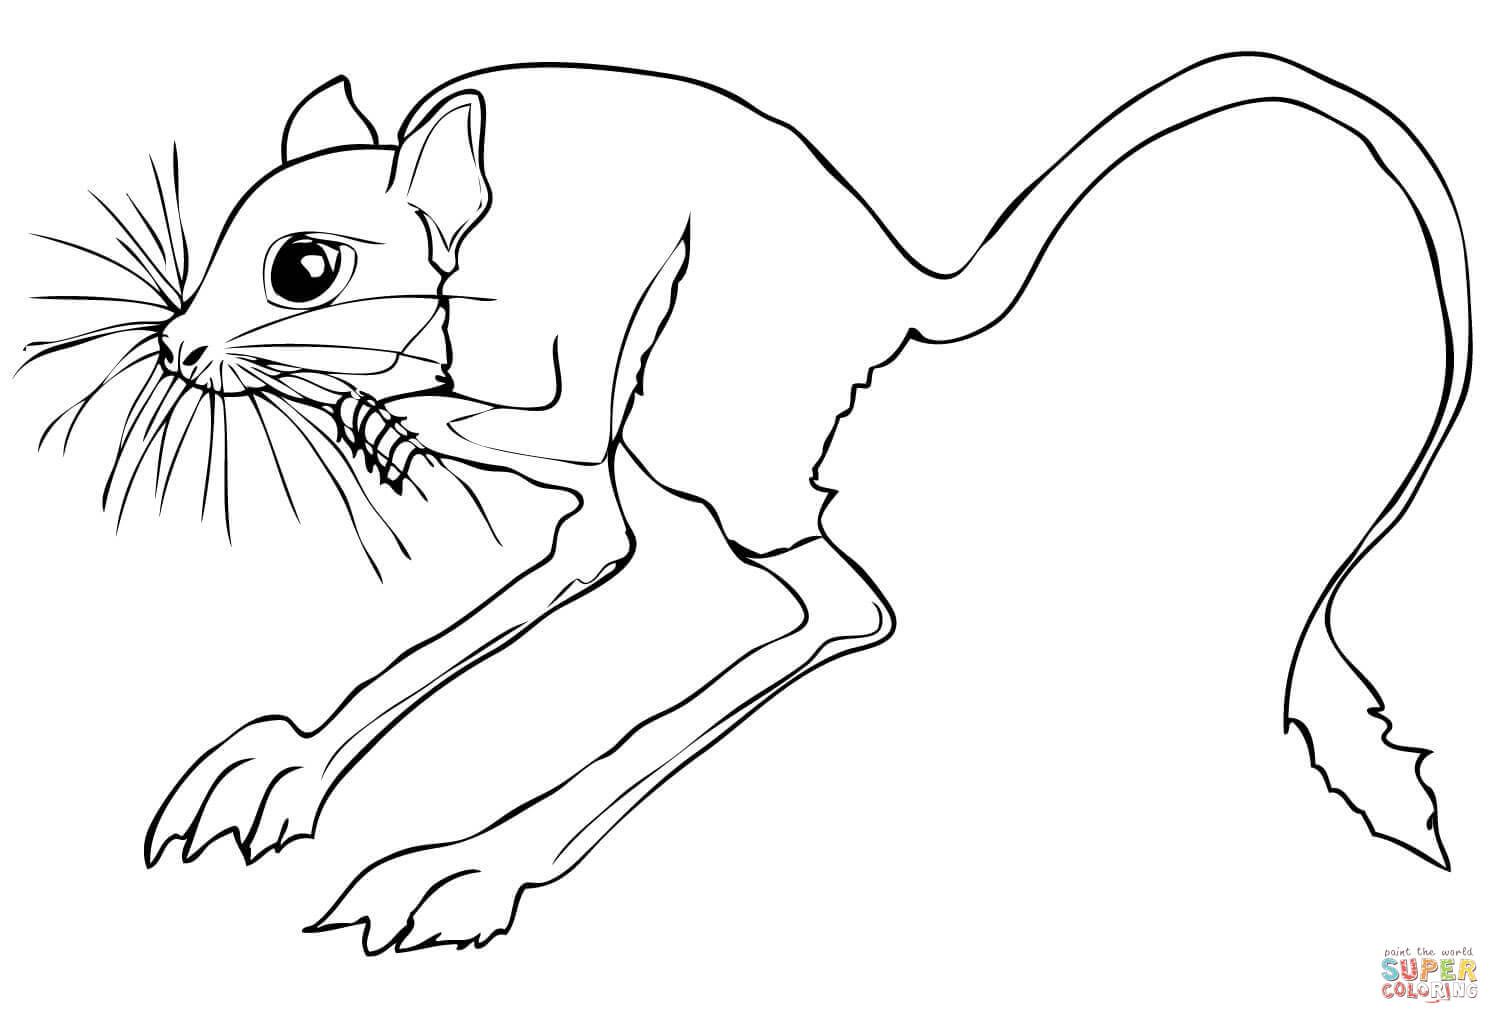 Desert Rodent Jerboa Coloring Page From Jerboas Category Select 24873 Printable Crafts Of Cartoons Nature Animals Bible And Many More